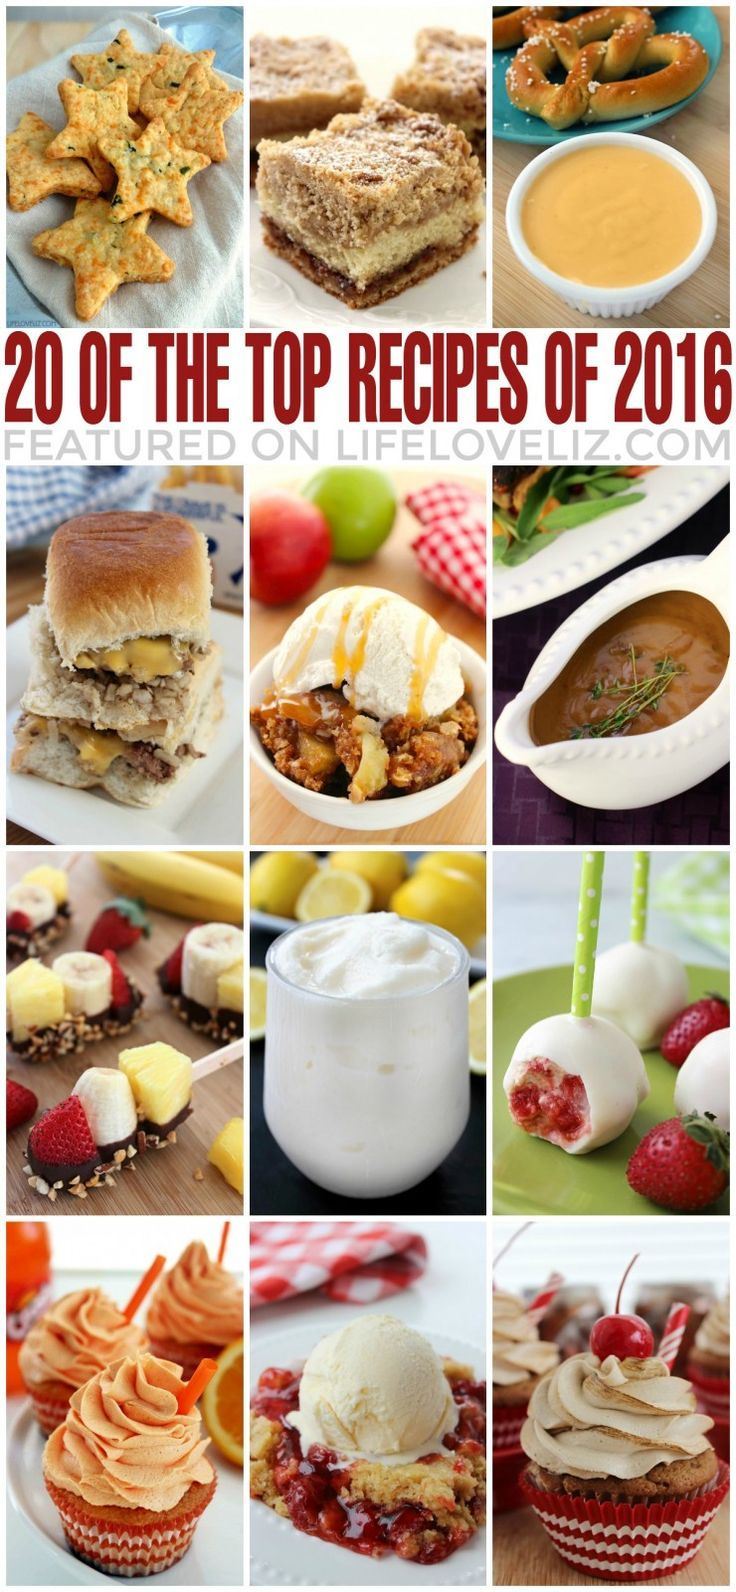 Today I want to share with you the 20 top recipes of 2016 featured on LifeLoveLiz.com. Well here is to 2017 and more delicious recipes to come! Enjoy!